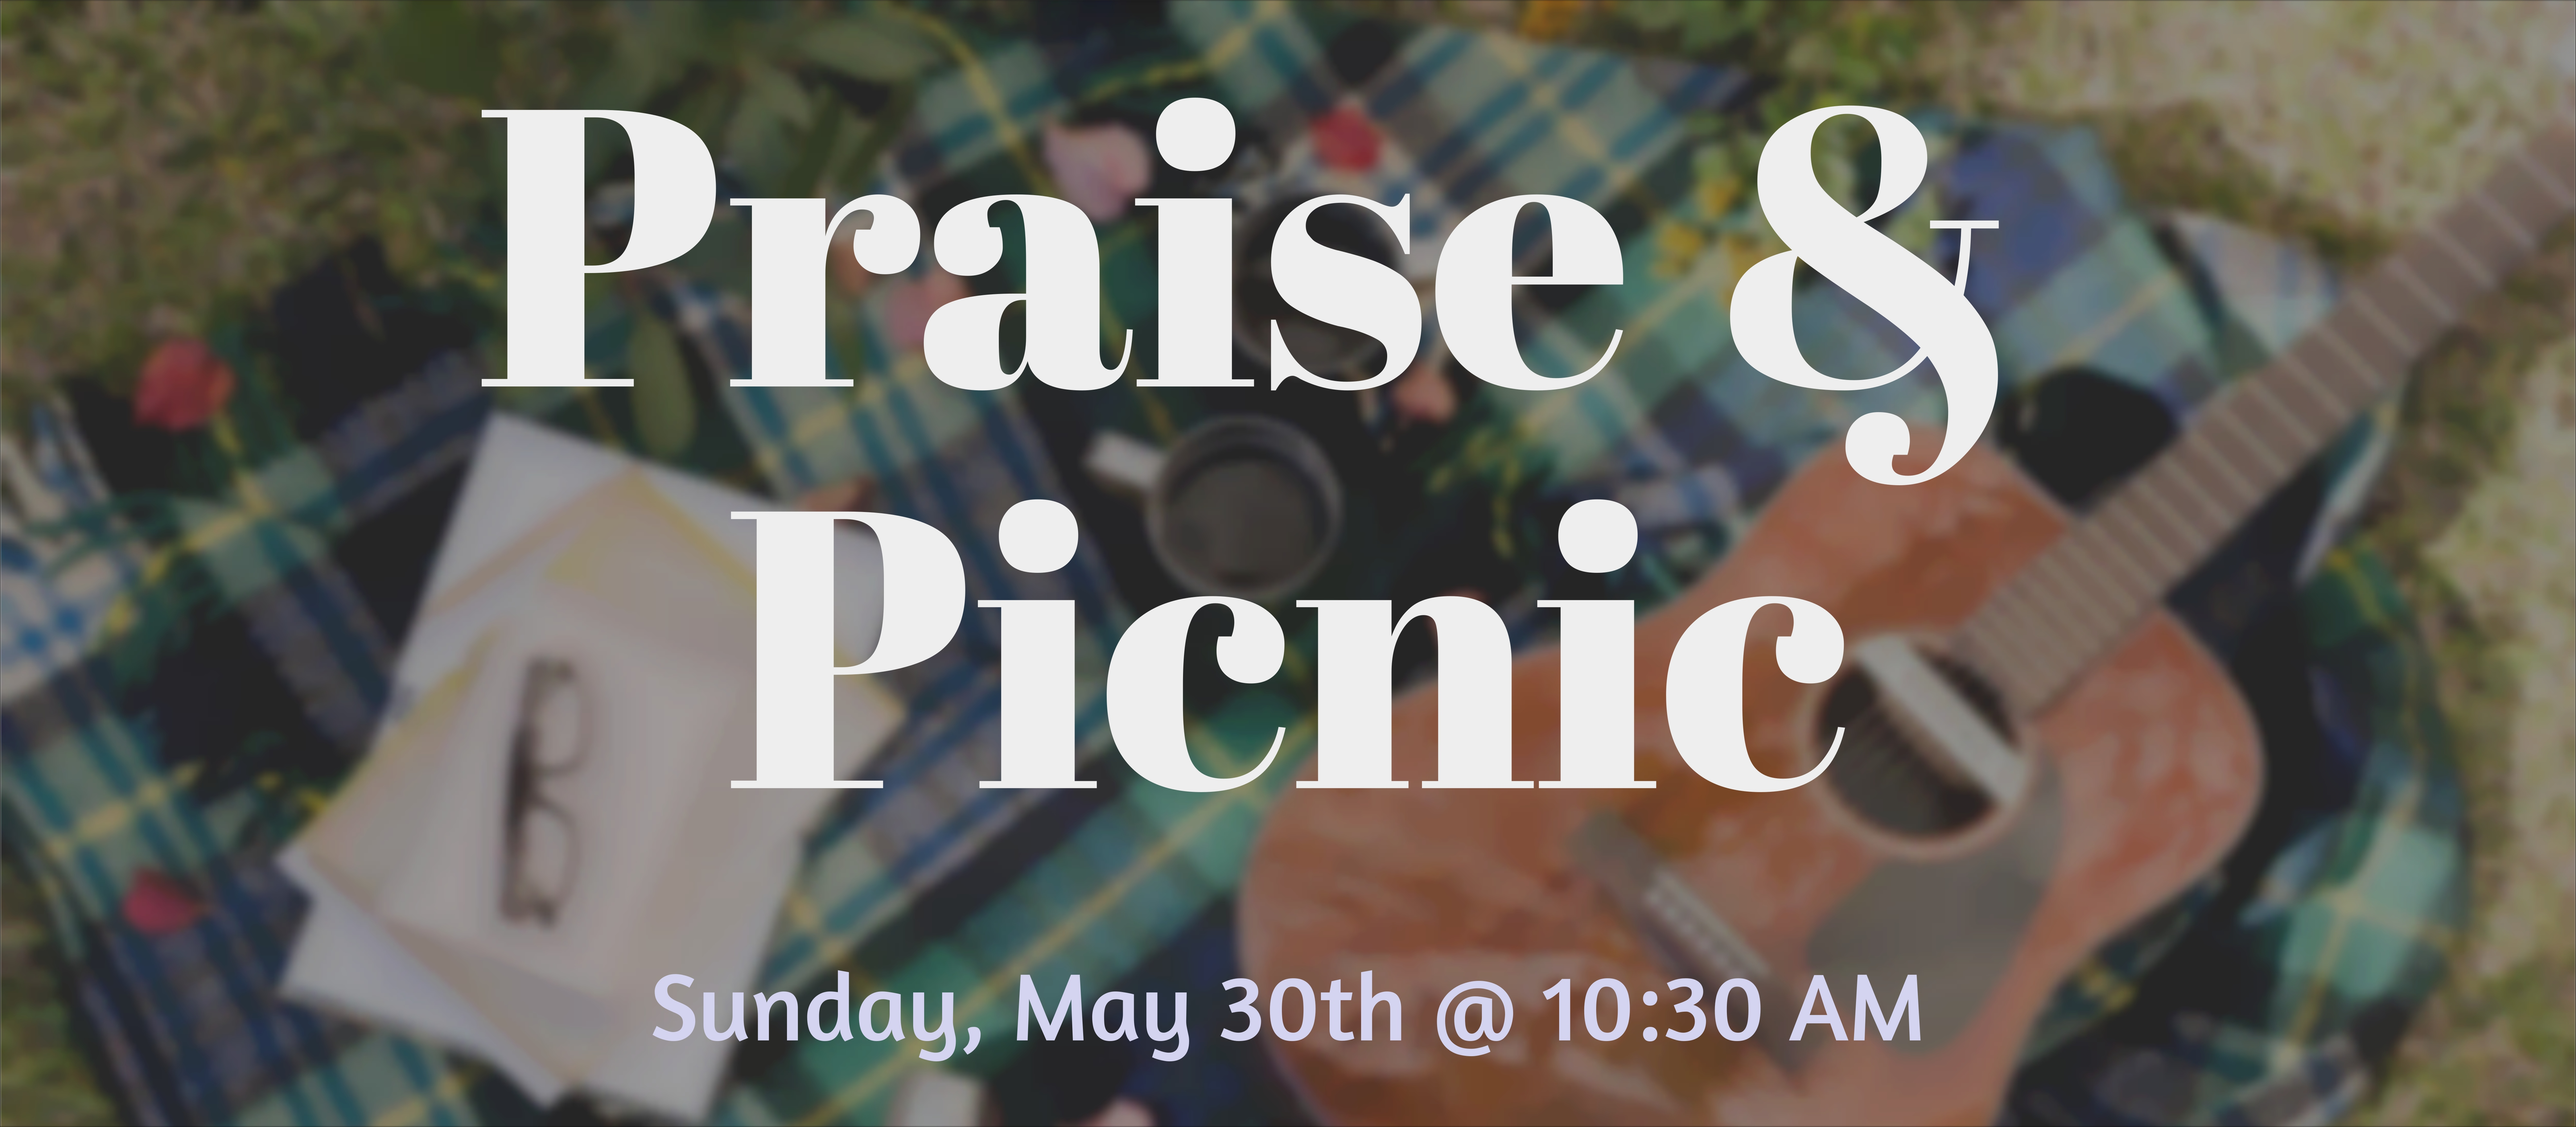 Praise_and_Picnic_web_banner